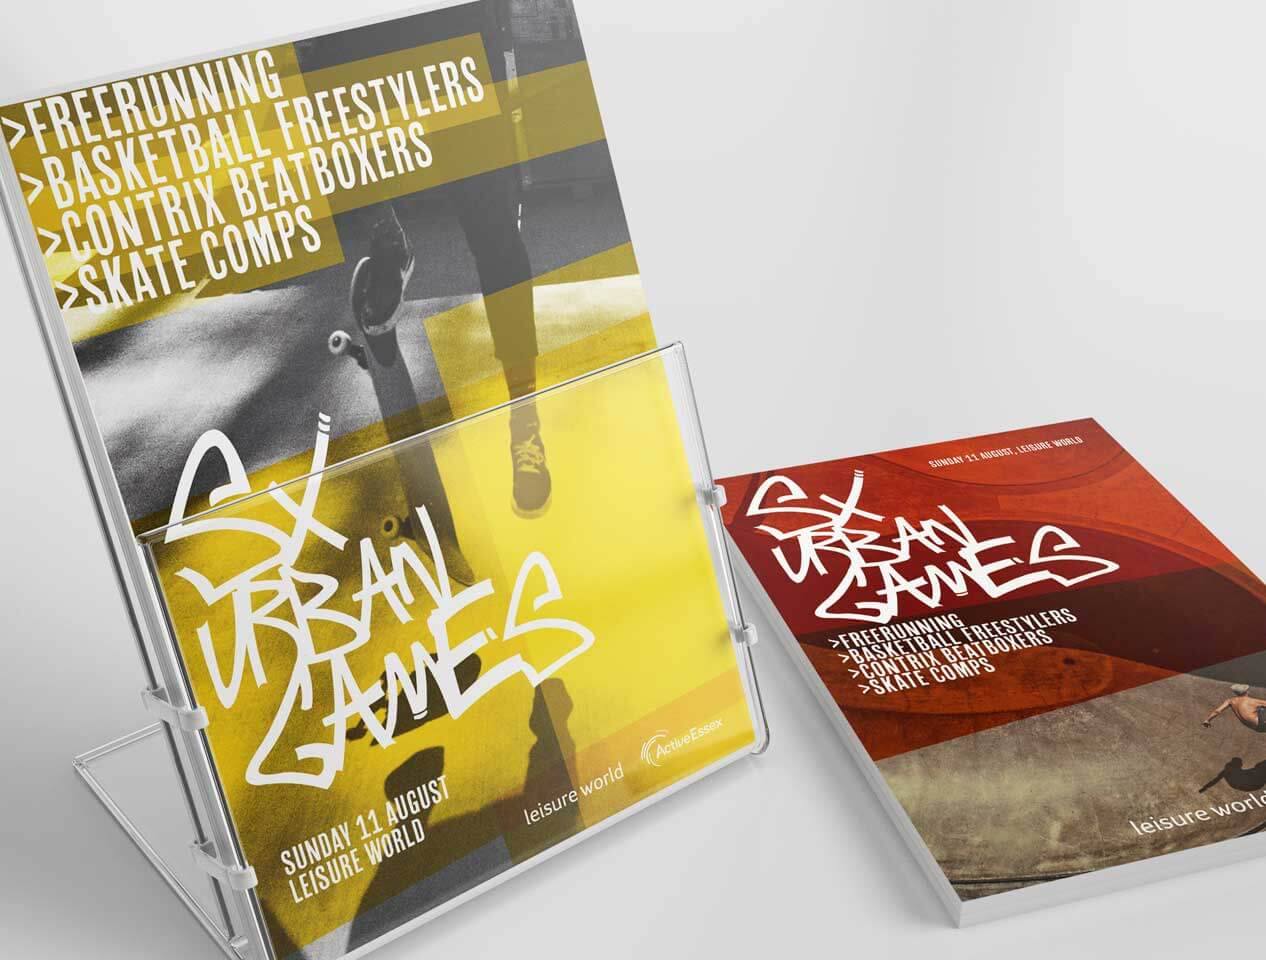 Image showing two leaflet designs showing images of skateboarding and graffiti text